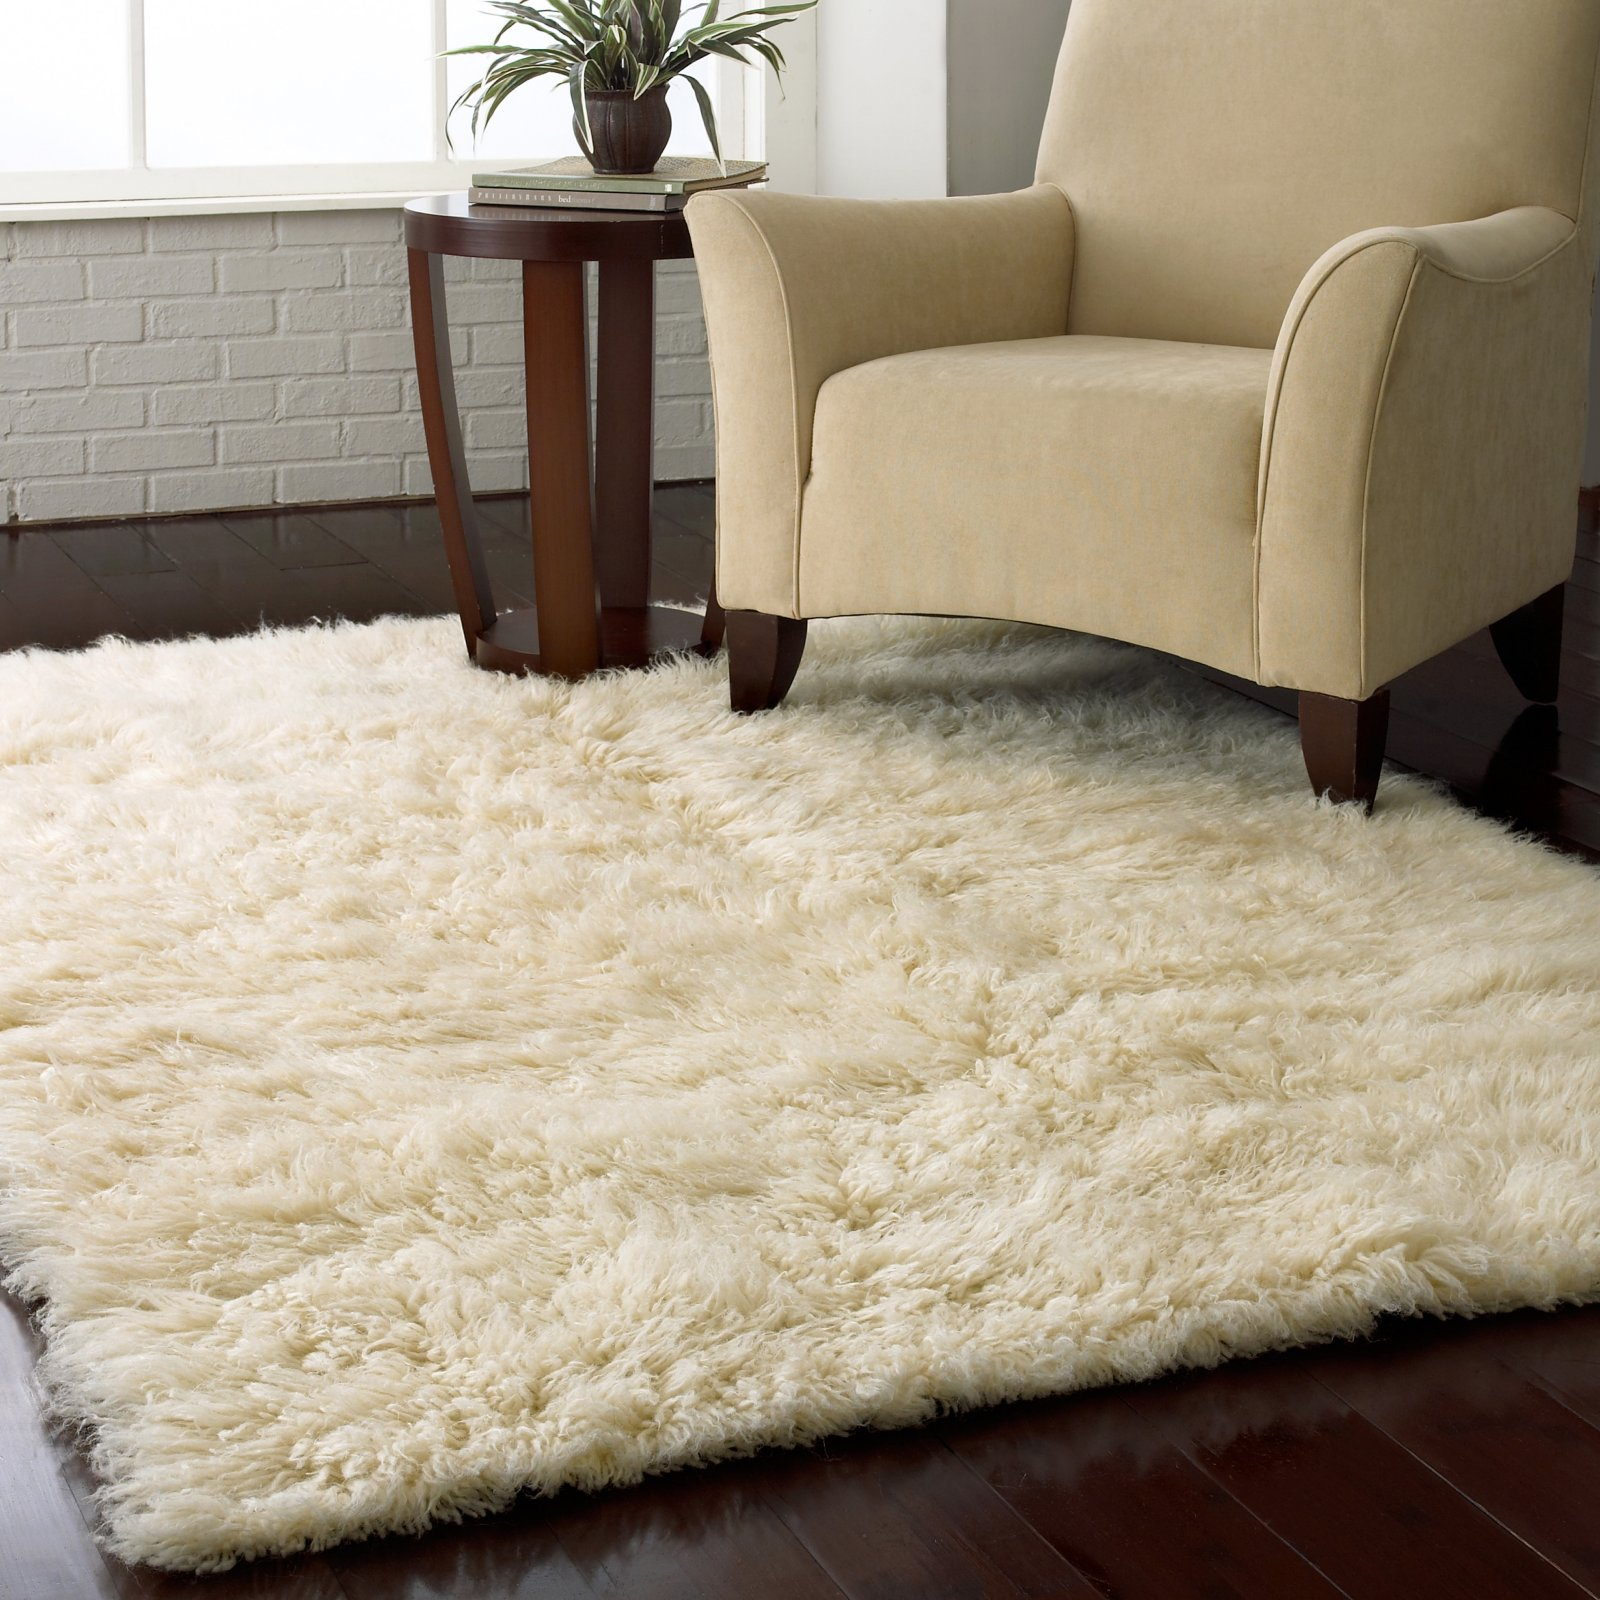 Luxury Flokati Shag Rug - Natural soft plush area rugs